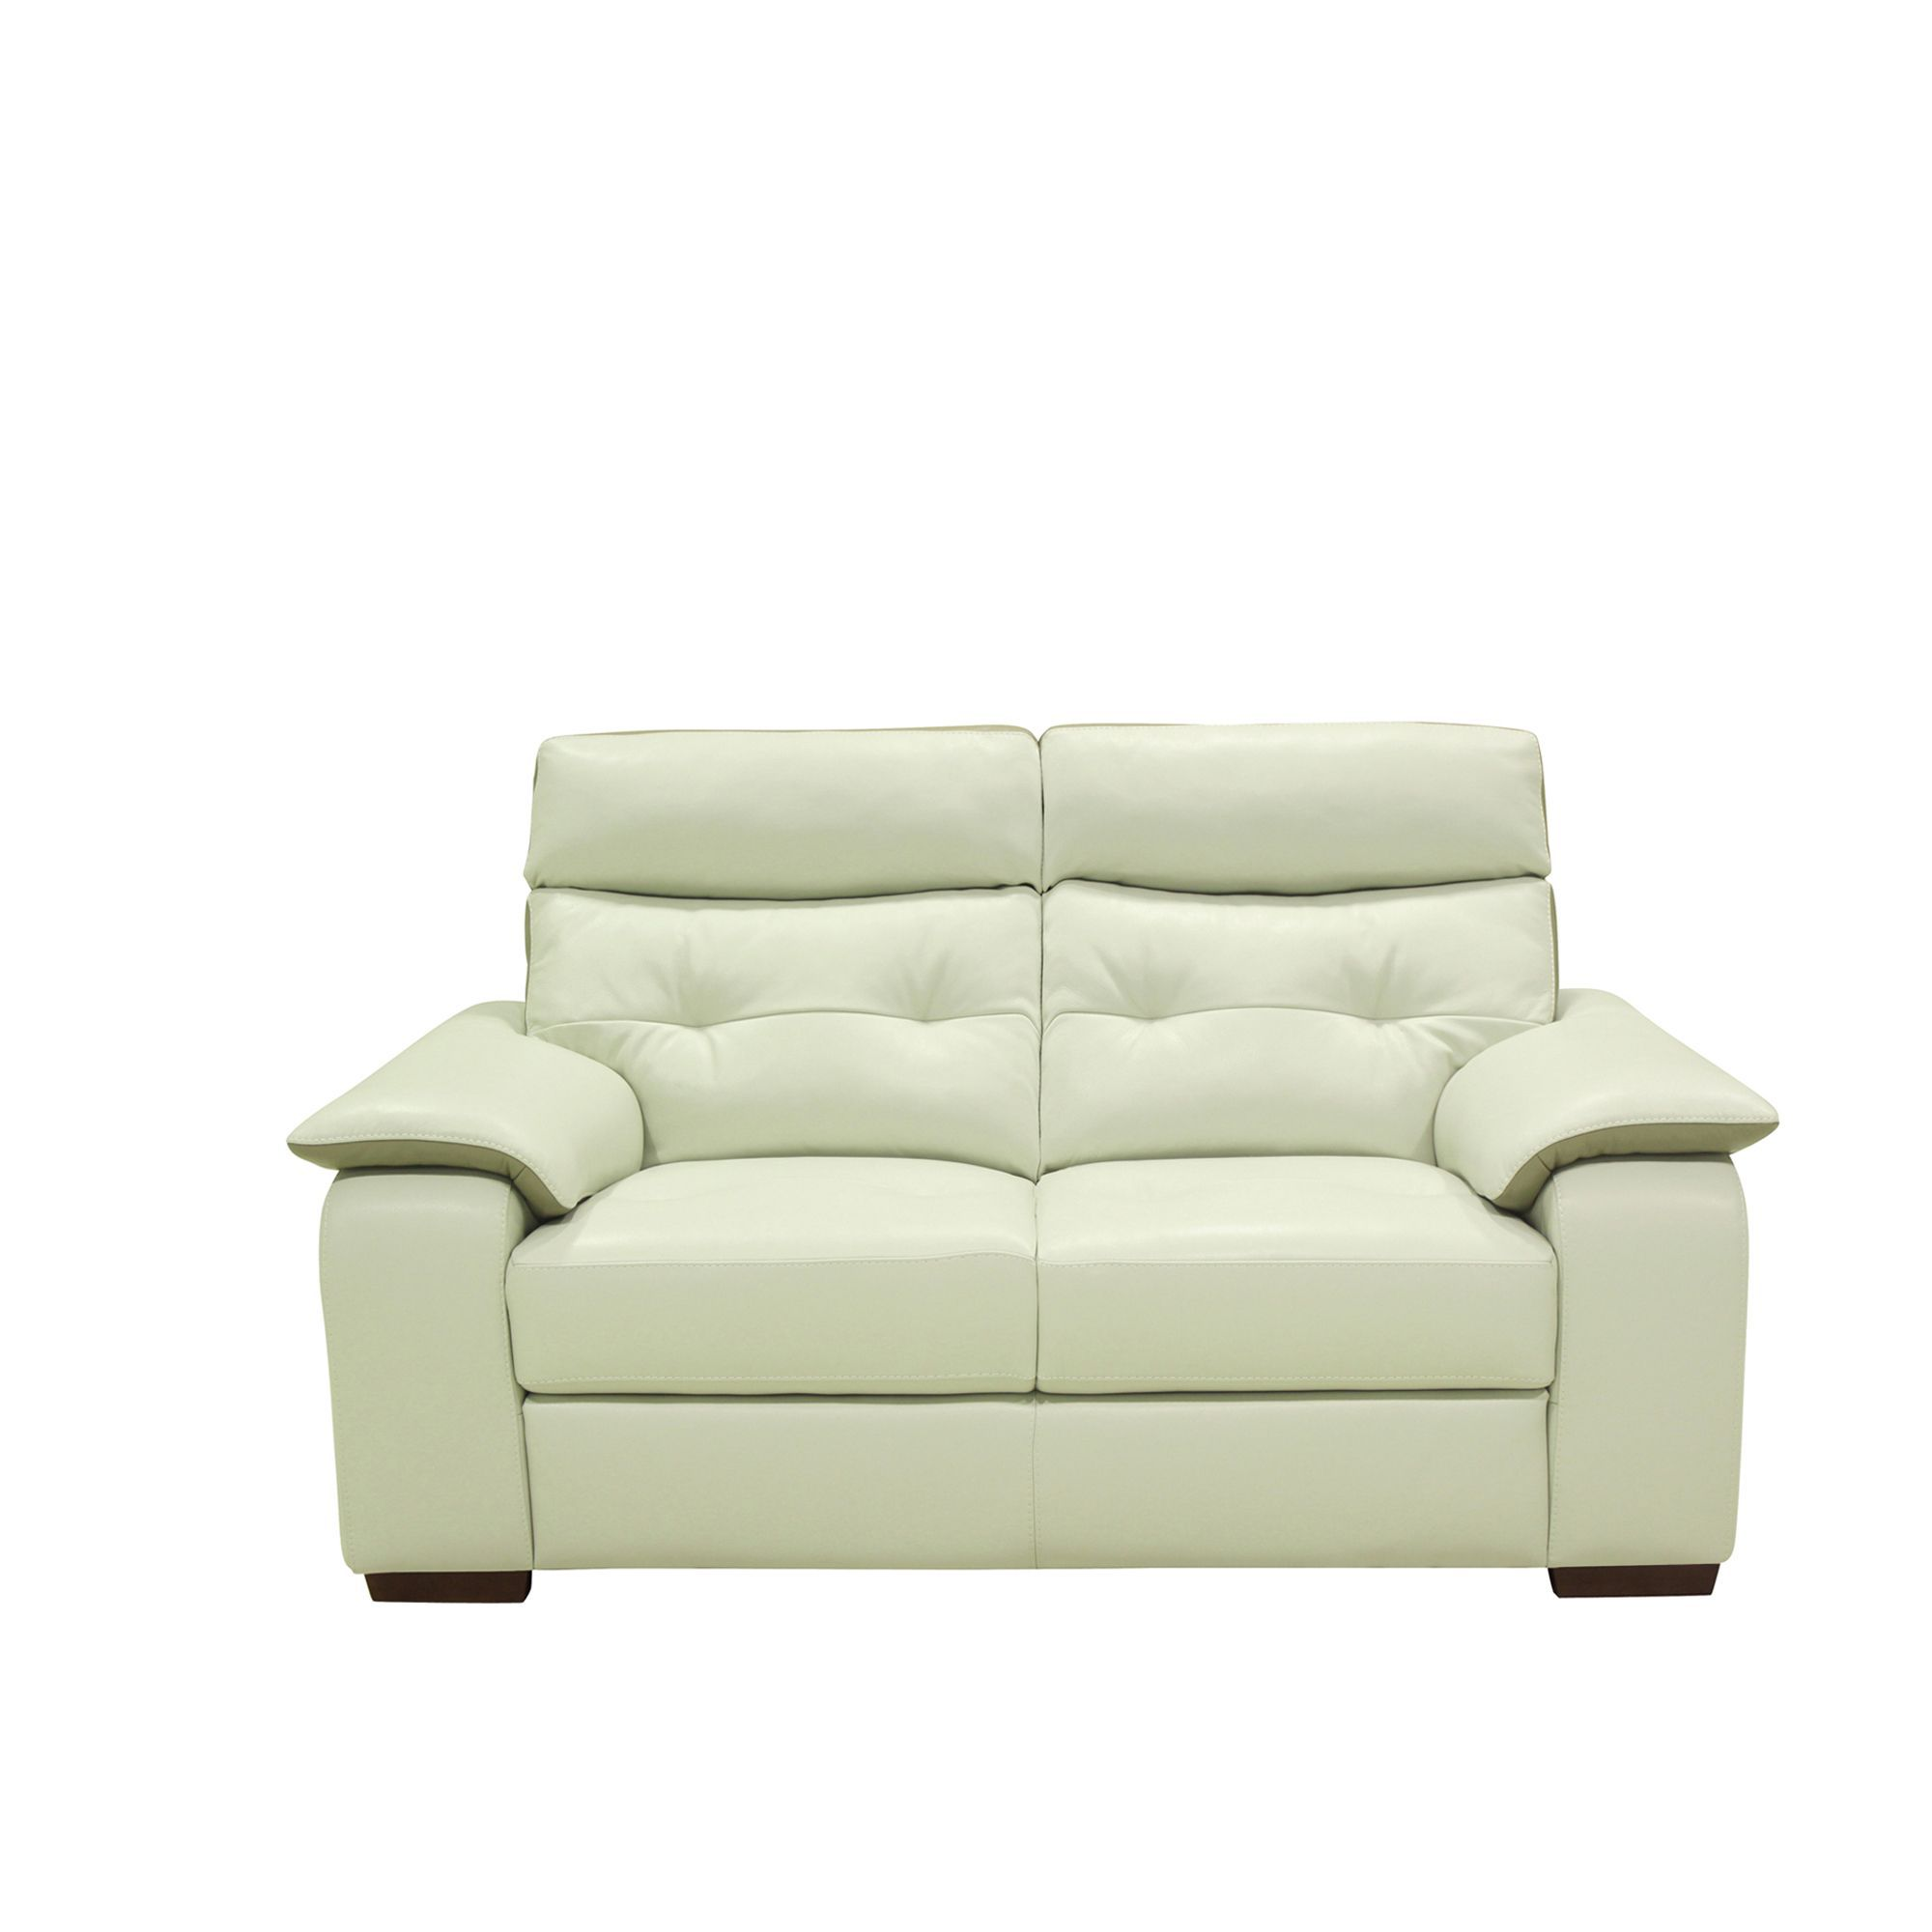 Cookes Collection Hobart 2 Seater Sofa All Sofas